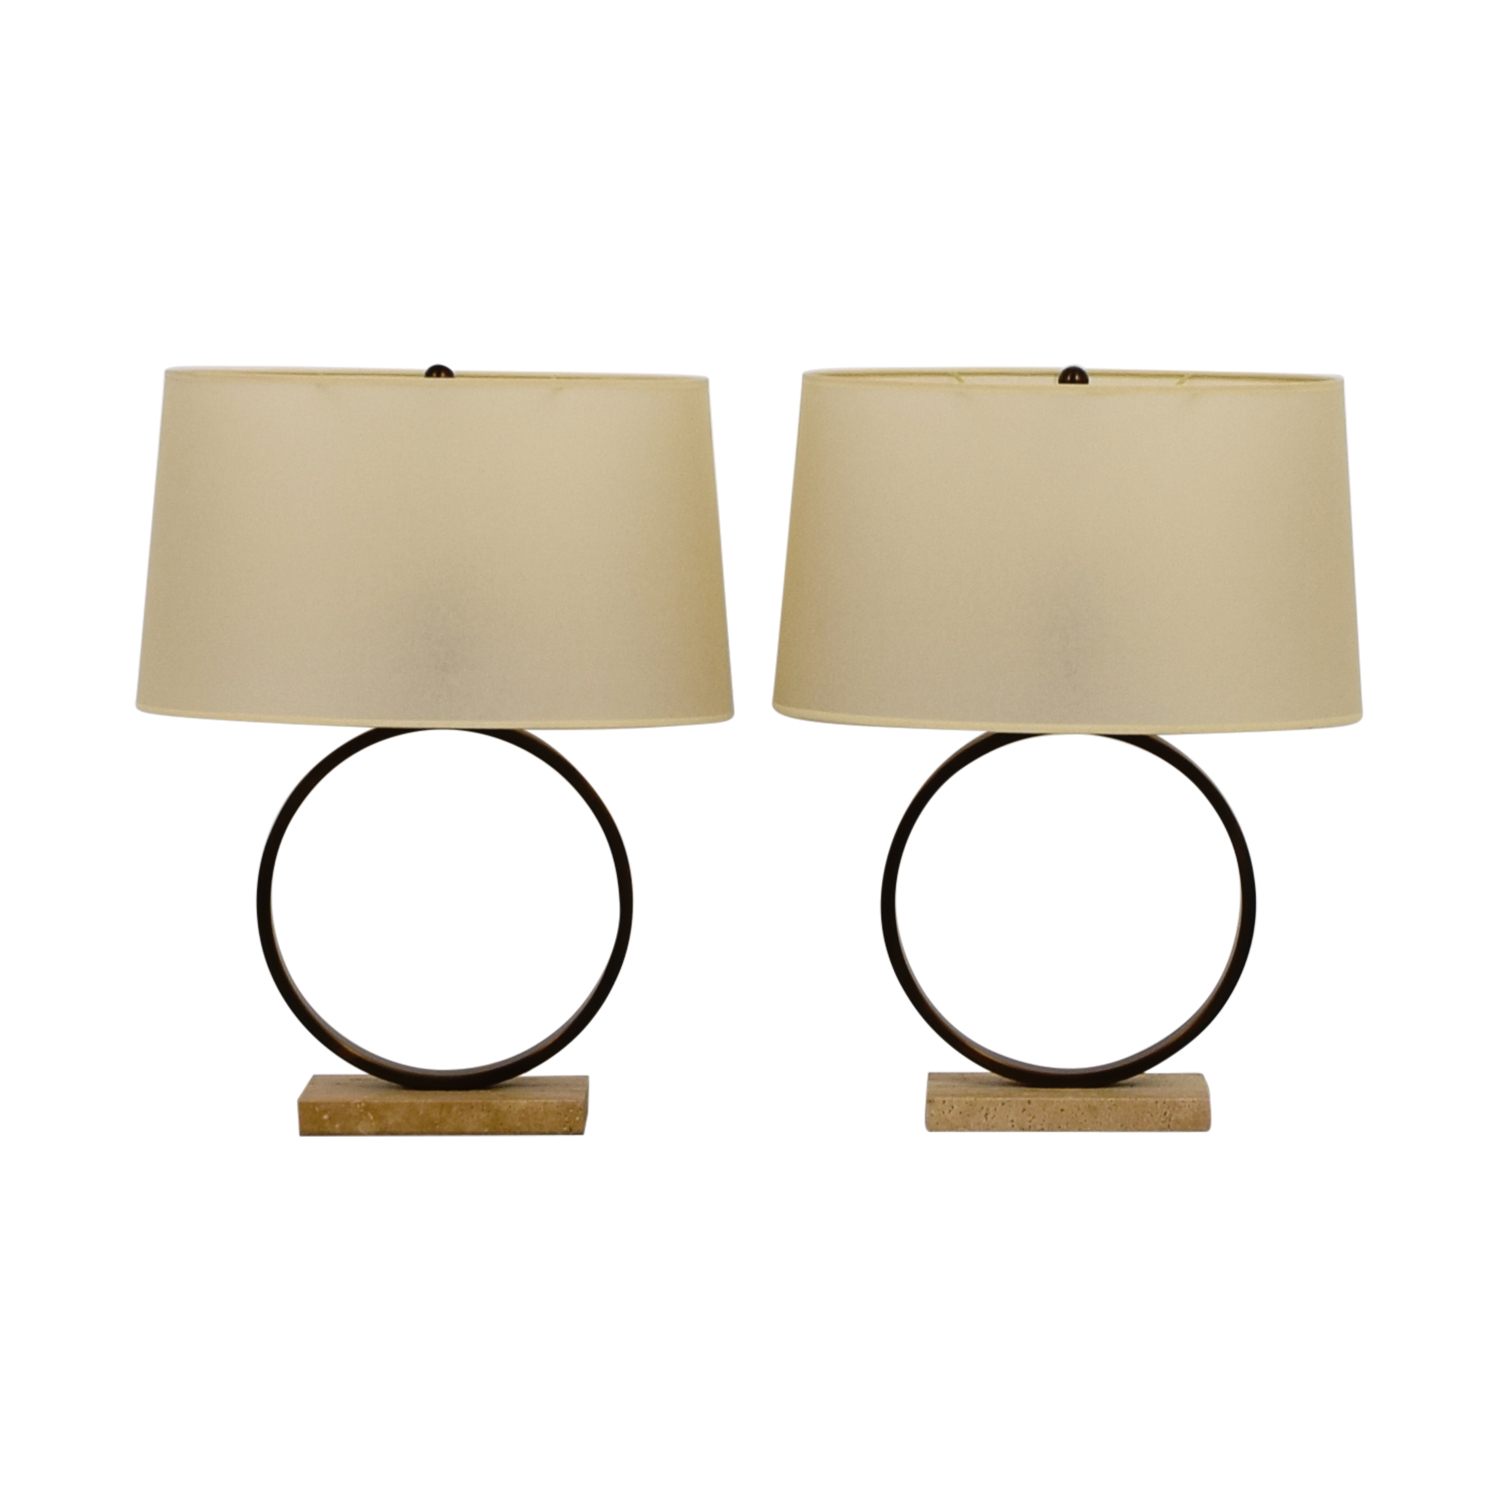 Mitchell Gold + Bob Williams Mitchell Gold + Bob Williams Marco Circle Table Lamps Decor